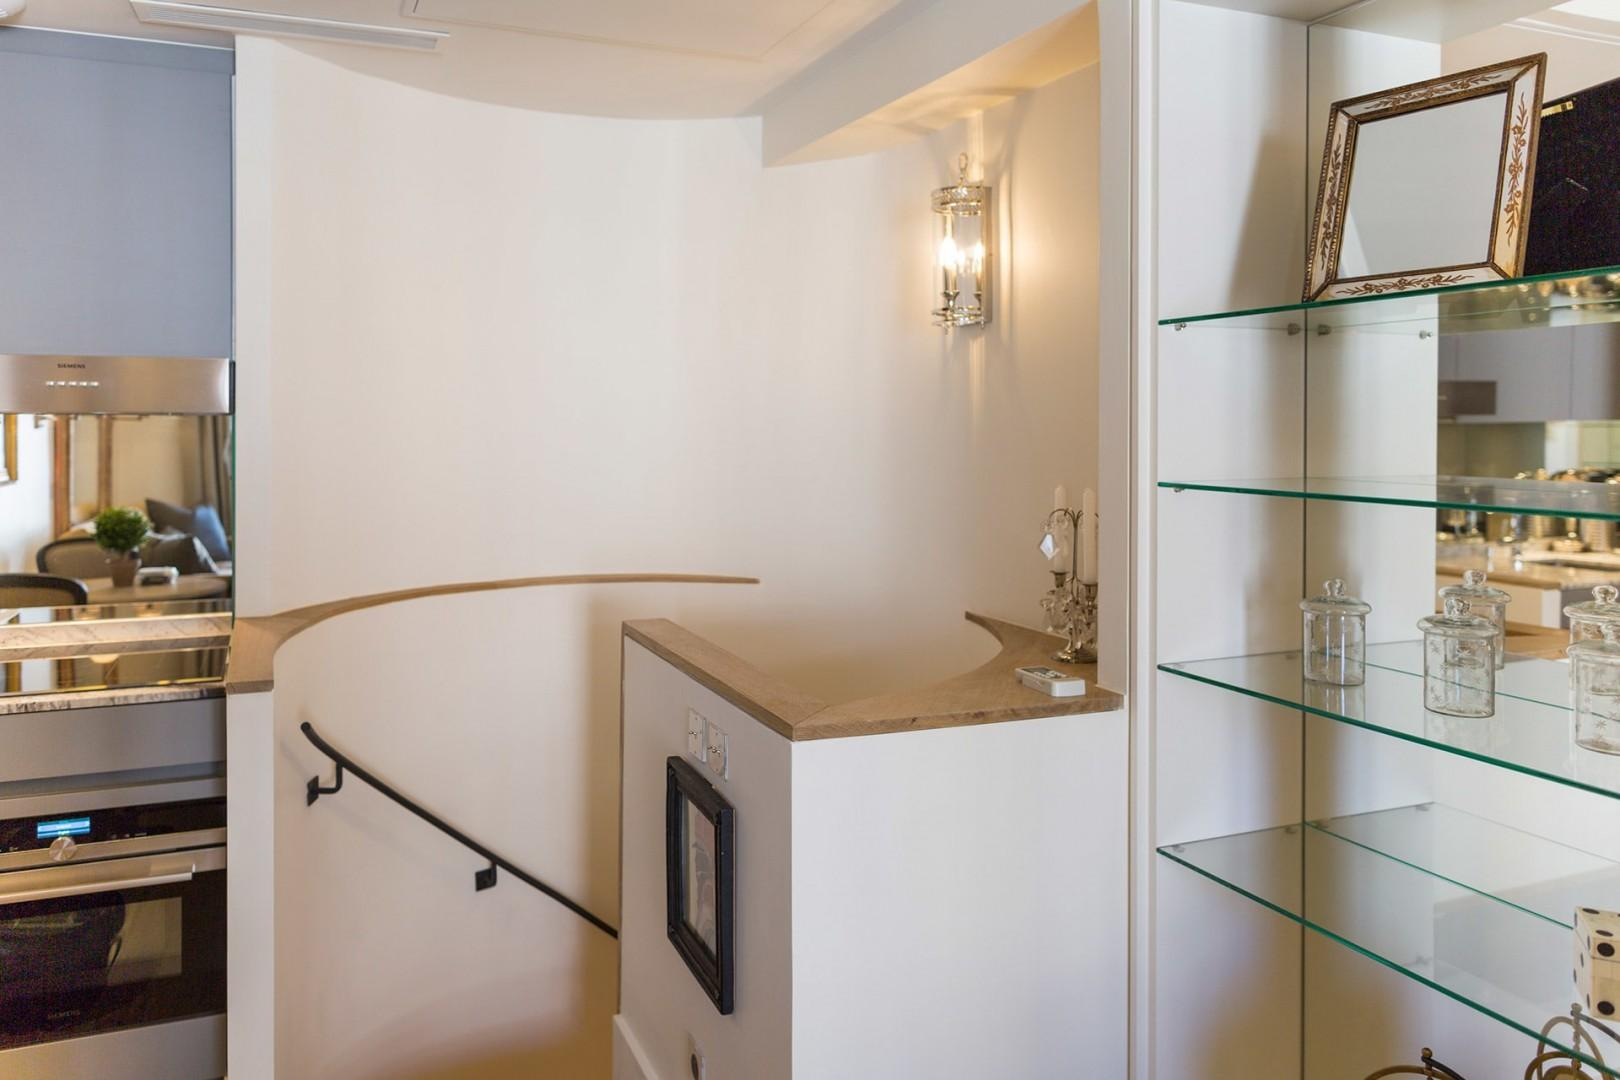 Staircase leading to the bedroom and en suite bathroom